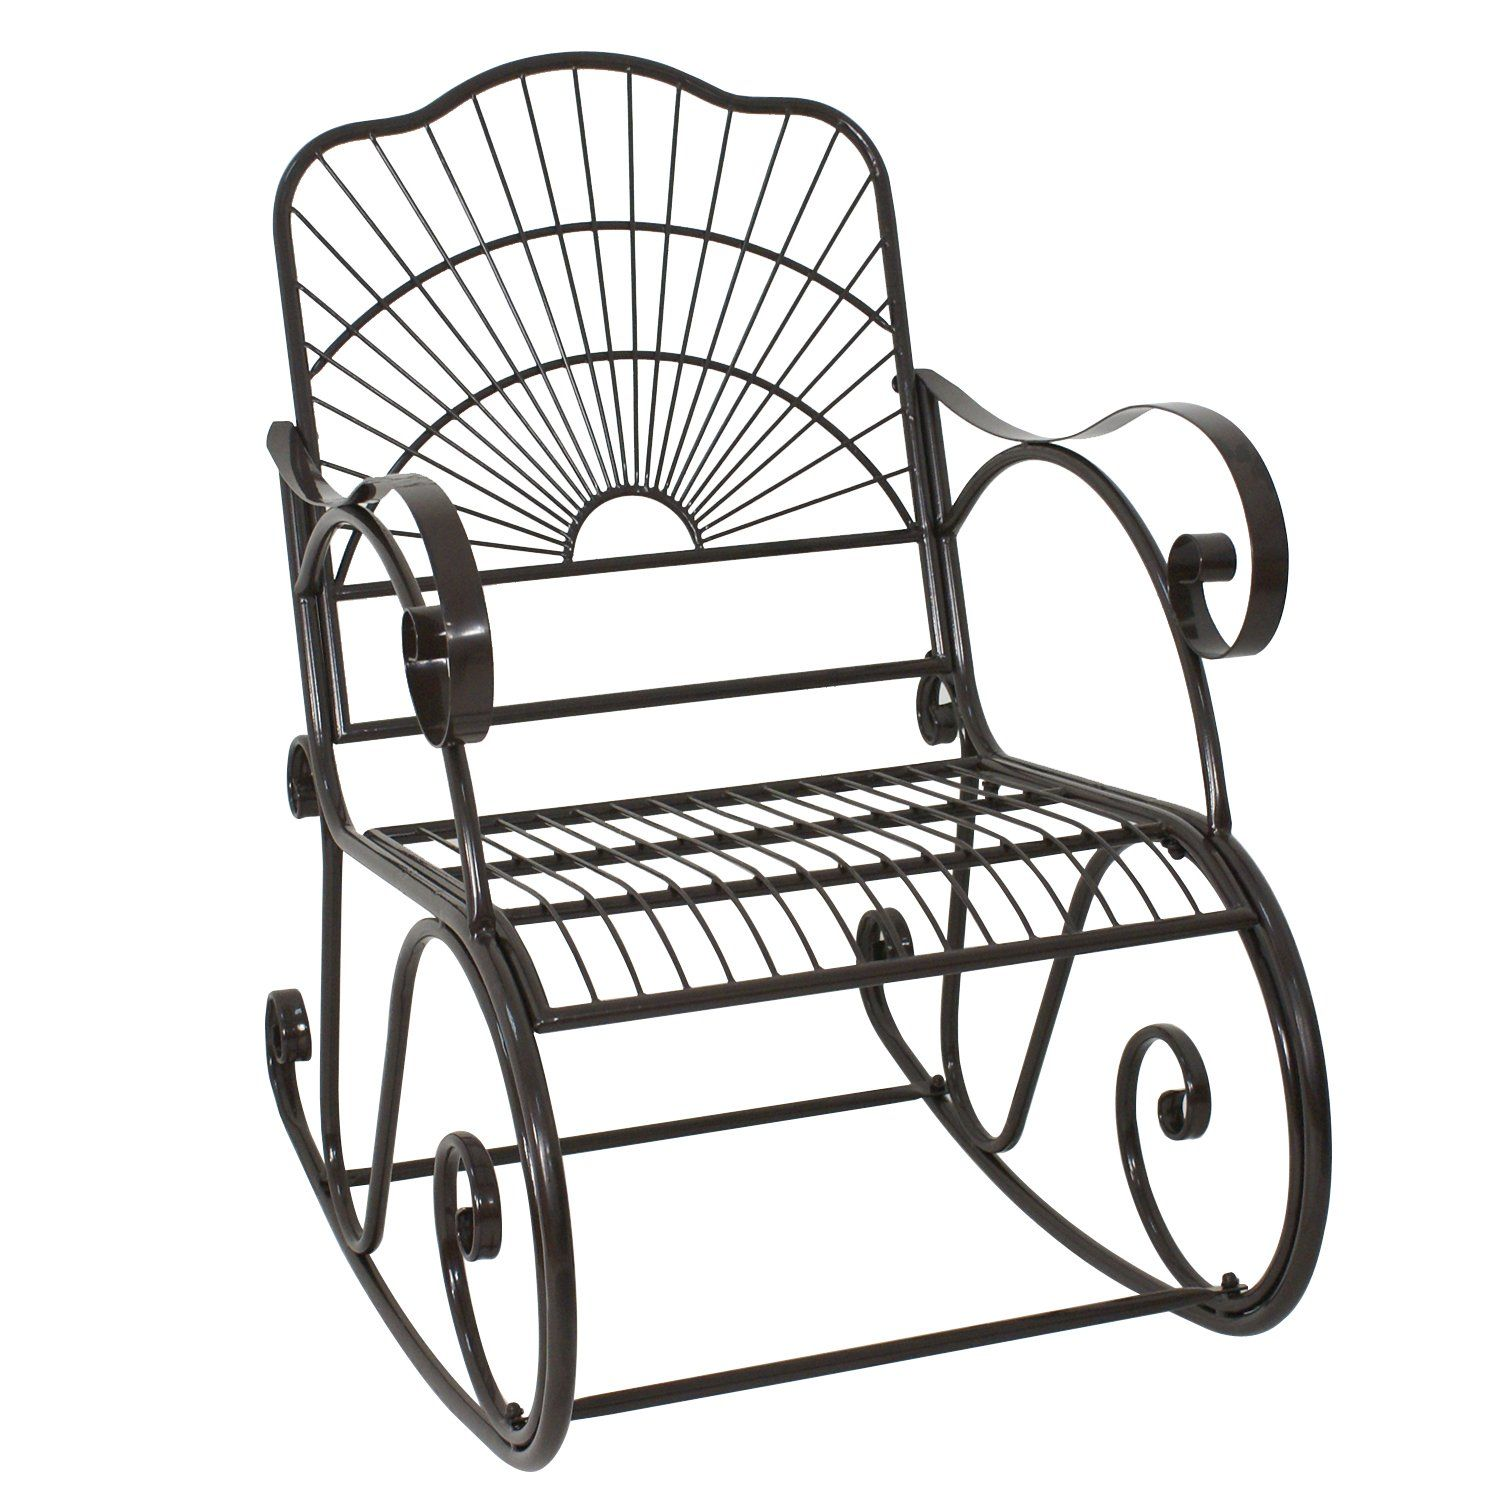 Wrought irom rocking chair outdoor porch patio rocker seat antique